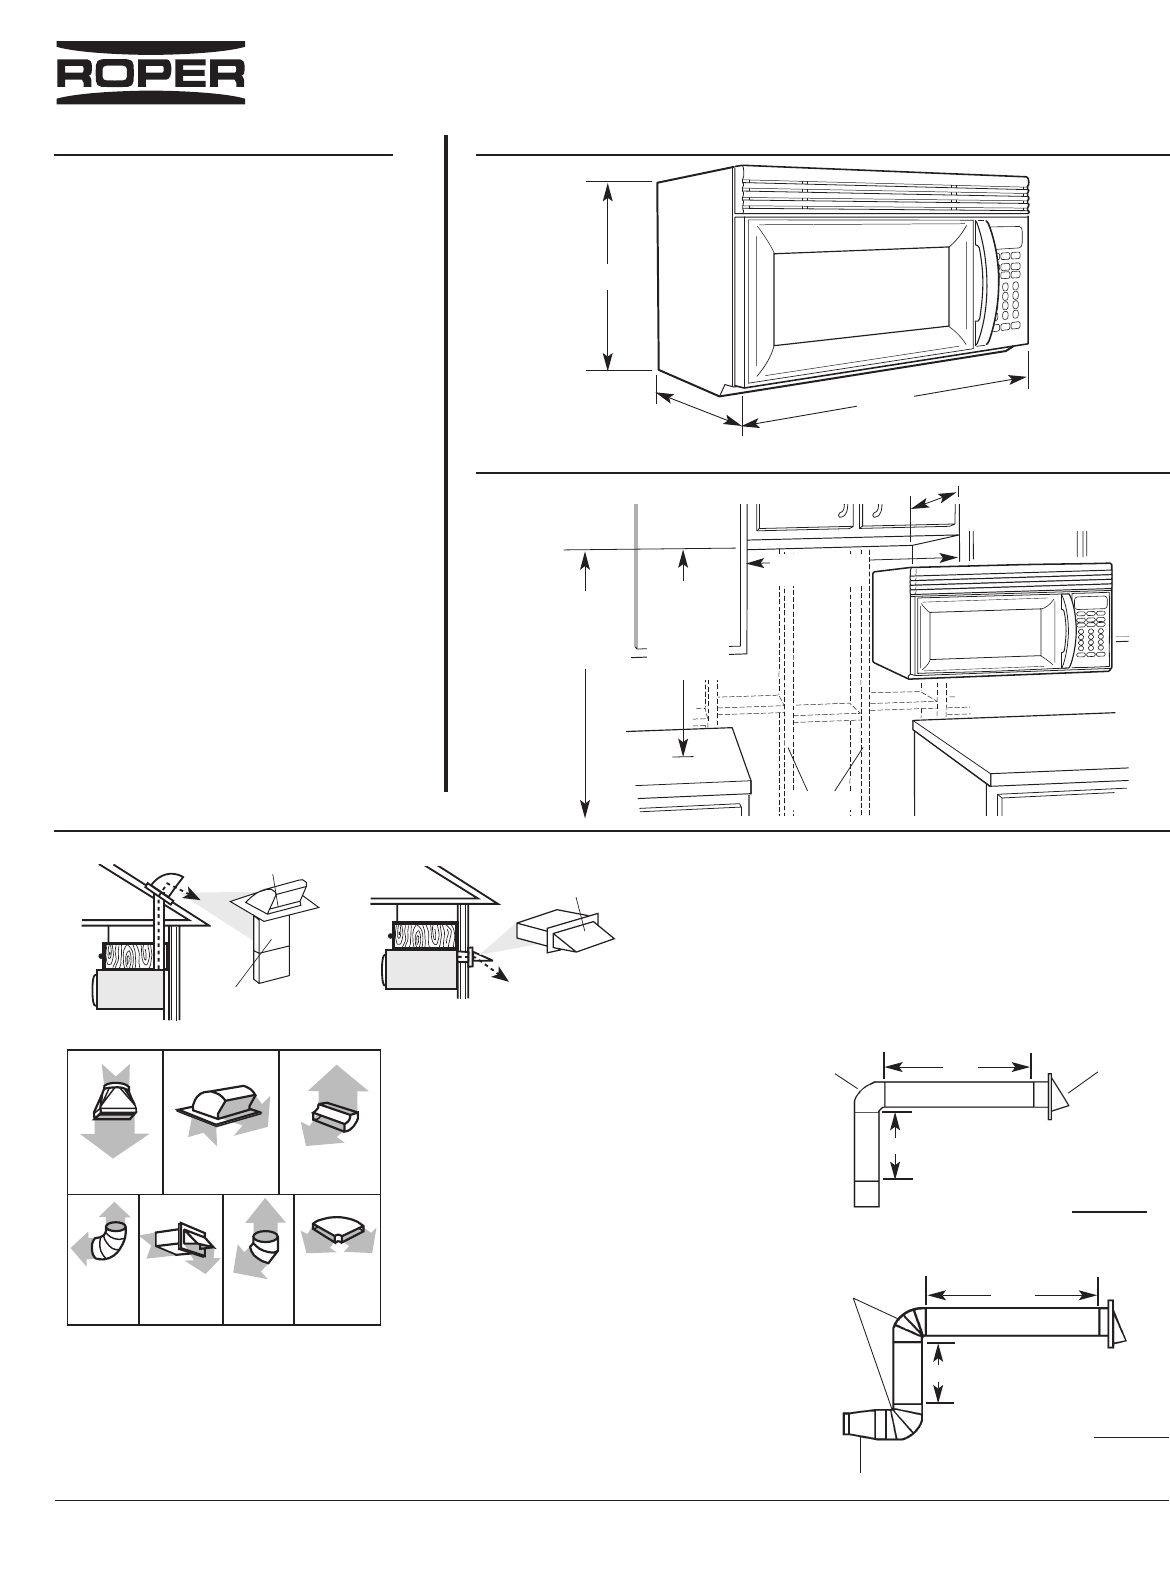 Roper Microwave Oven Mhe14x User Guide